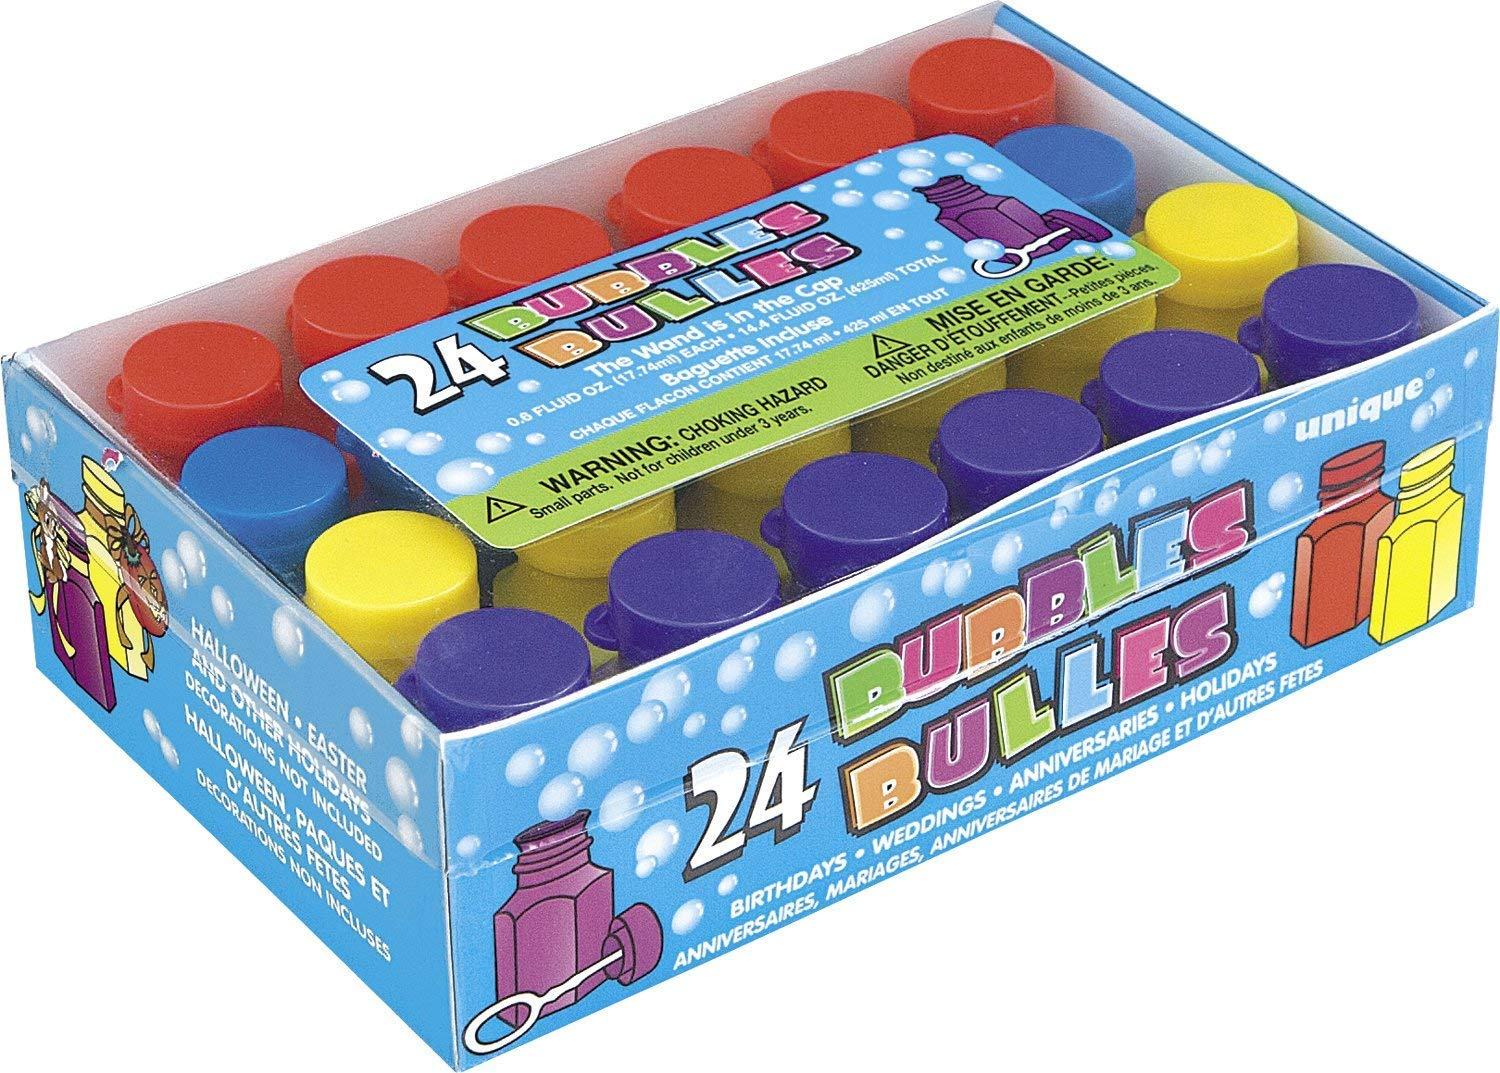 2X95233 - Mini Party Bubbles Party Bag Fillers, Pack of 24 Unique Party